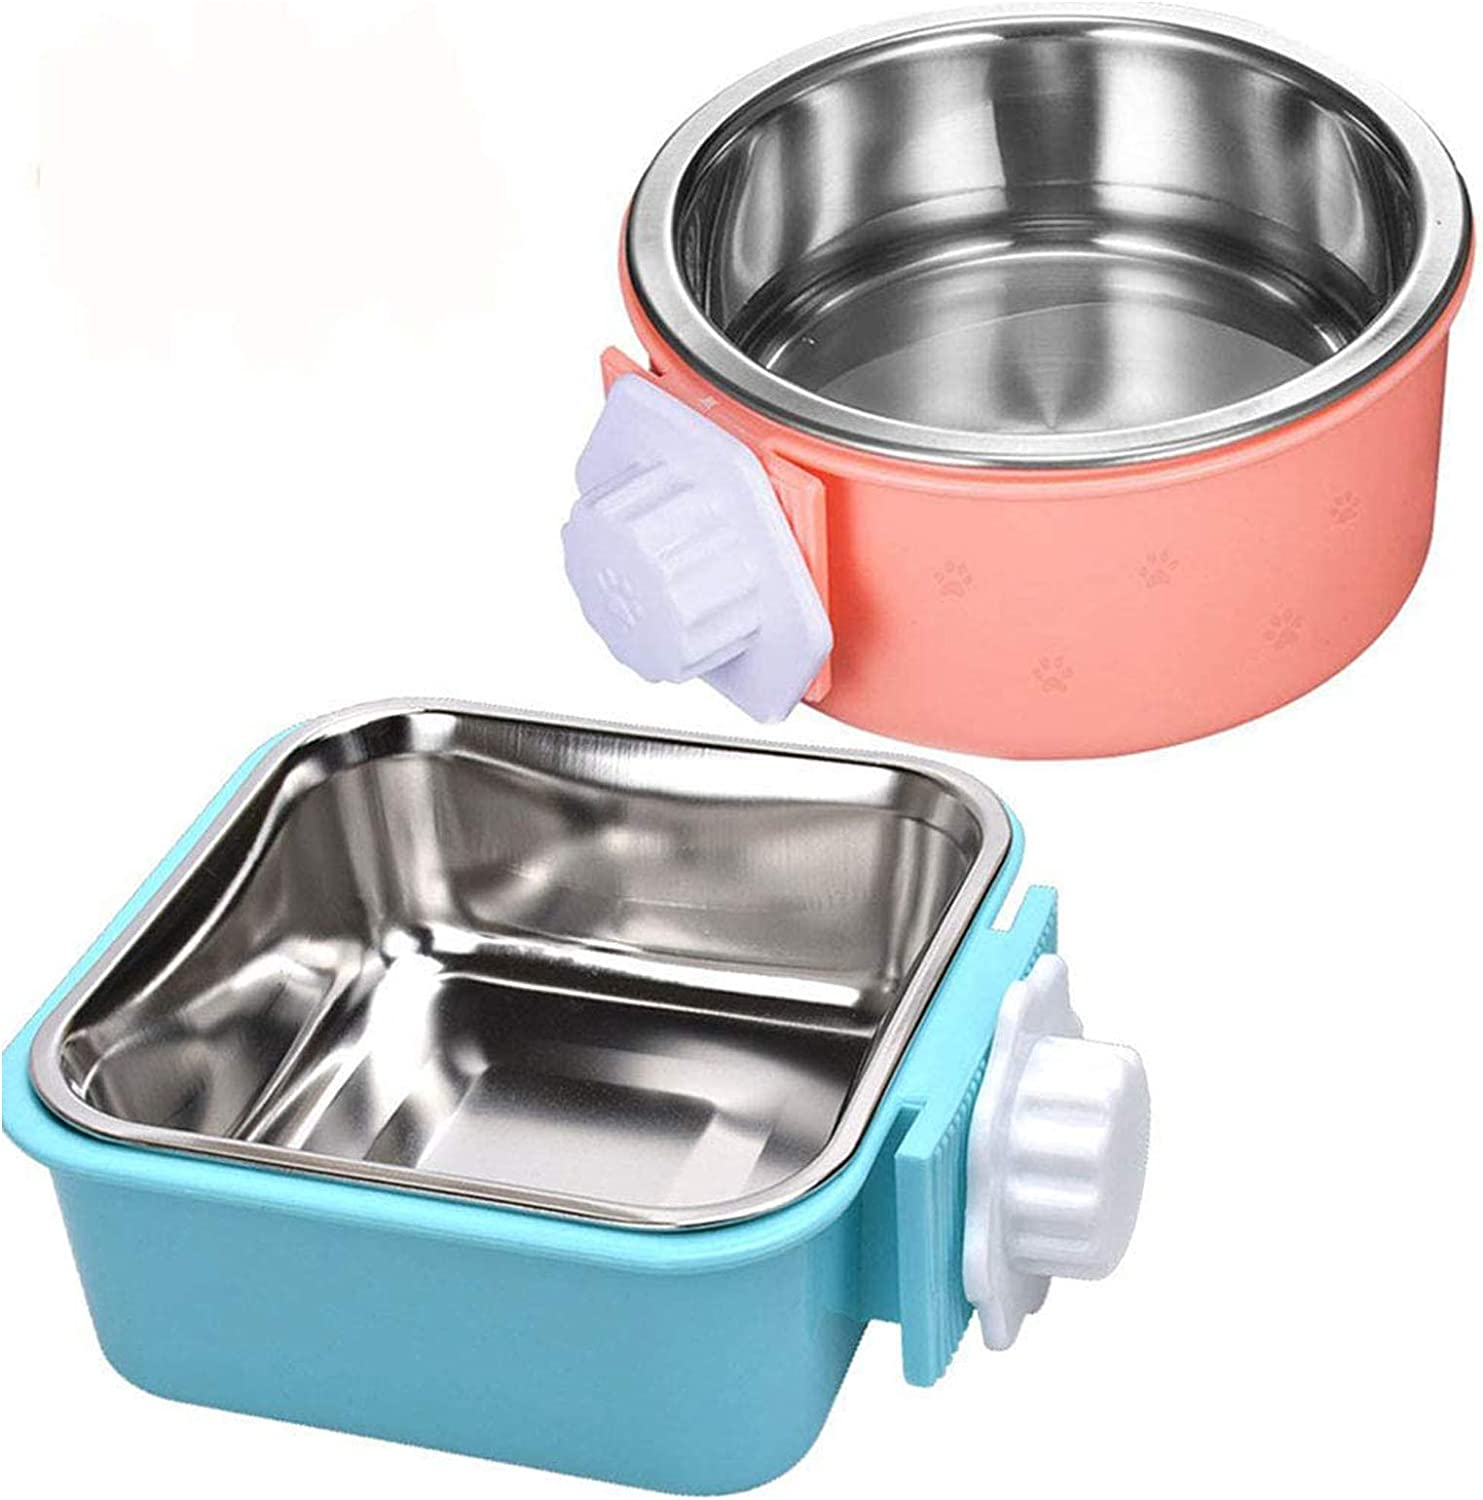 Hamiledyi Crate Dog Bowl,Removable Stainless Steel Pet Cage Bowl Food Water Feeder Bows Coop Cup with Bolt Holder for Cat,Puppy,Rabbite Birds and Other Small Pets(2 Pack)